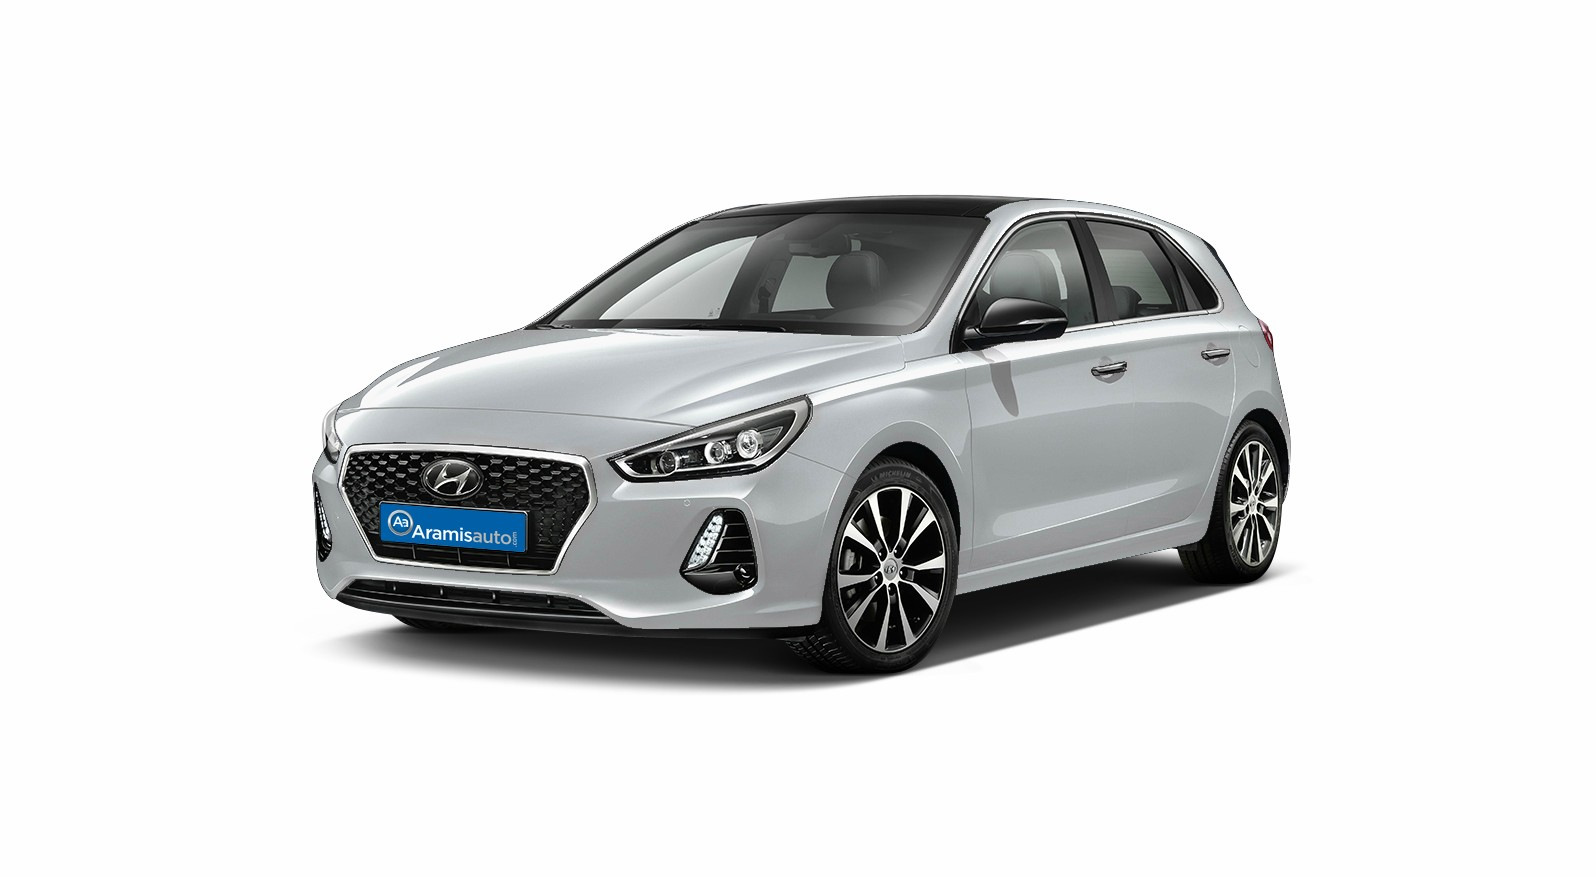 hyundai i30 nouvelle berline compacte 5 portes diesel 1 6 crdi 136 bo te manuelle. Black Bedroom Furniture Sets. Home Design Ideas